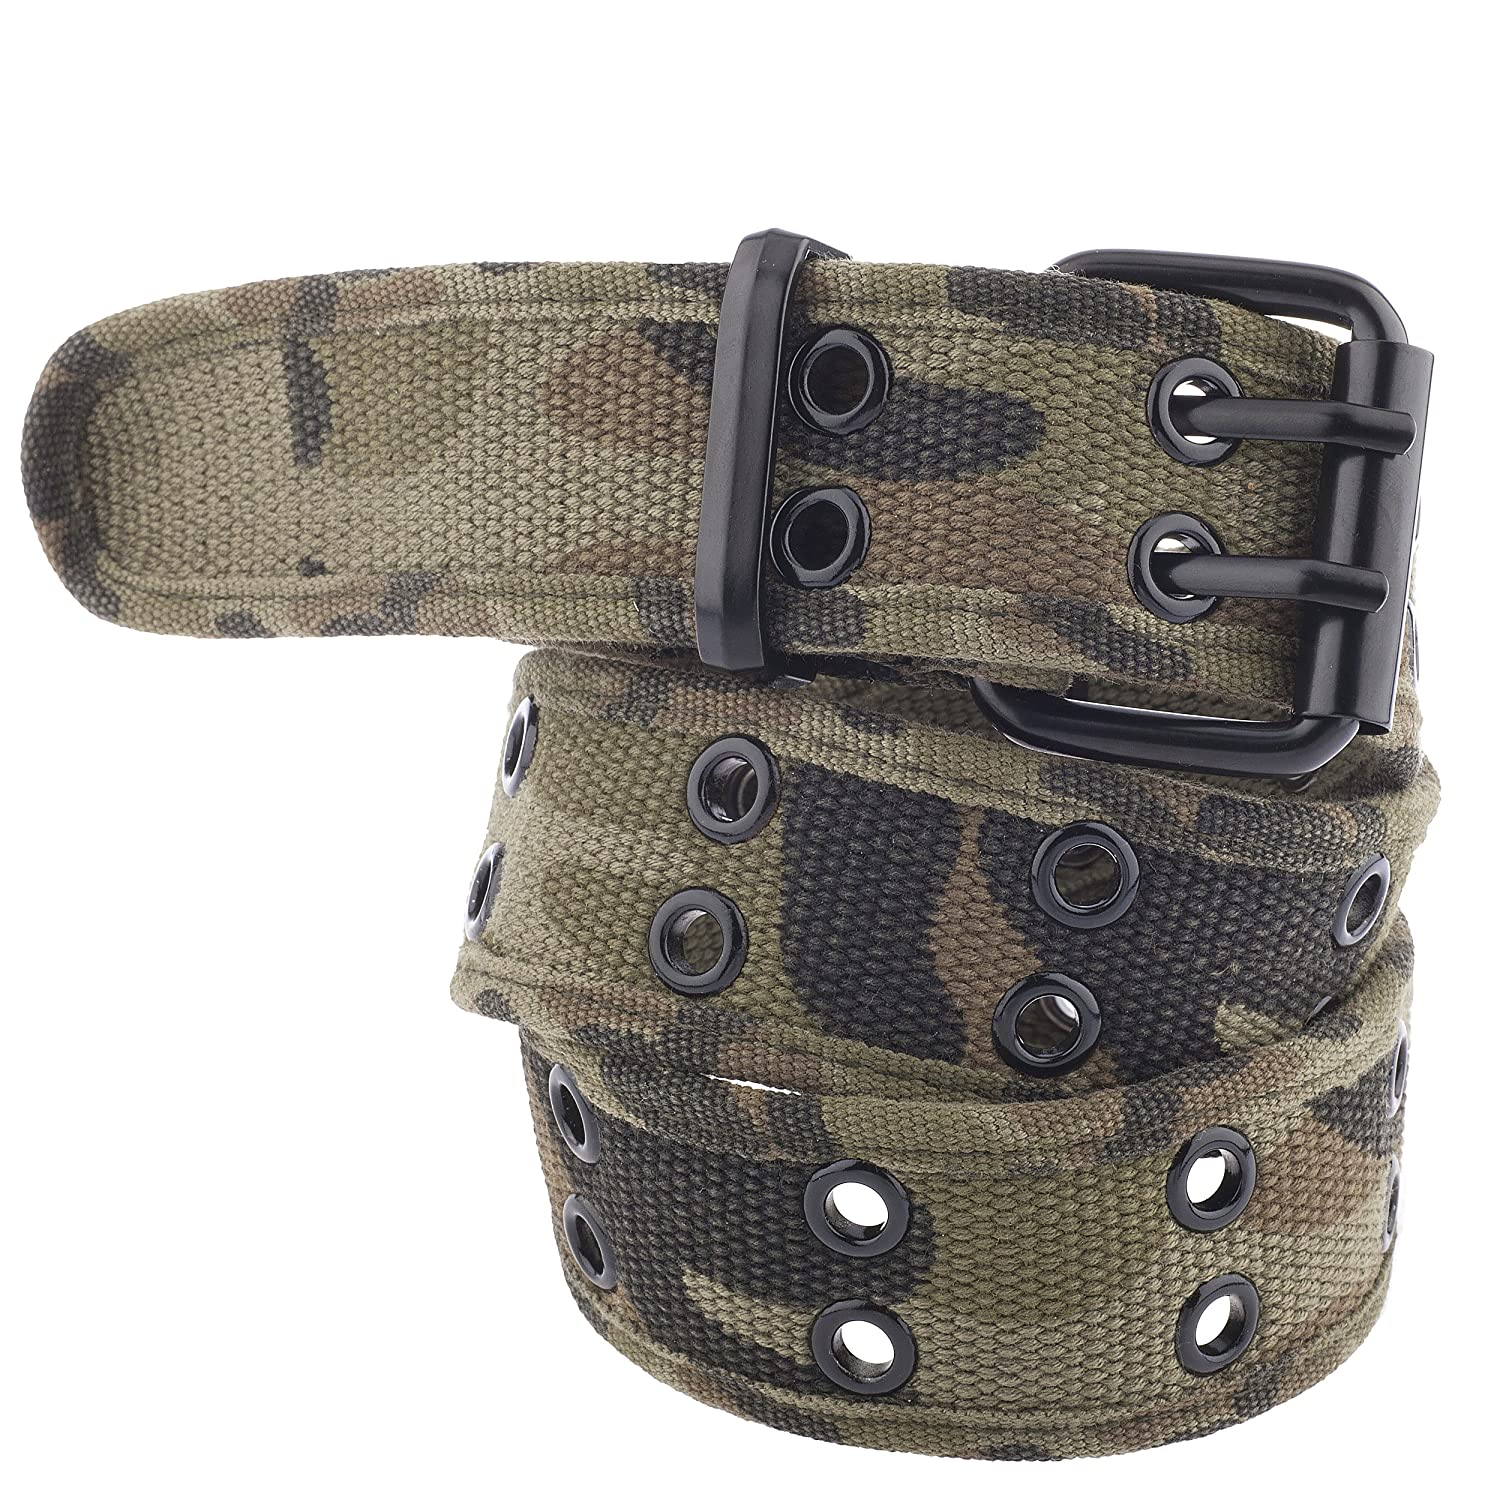 Unisex Two Hole Canvas Belt   Available In 14 Colors by Jotw